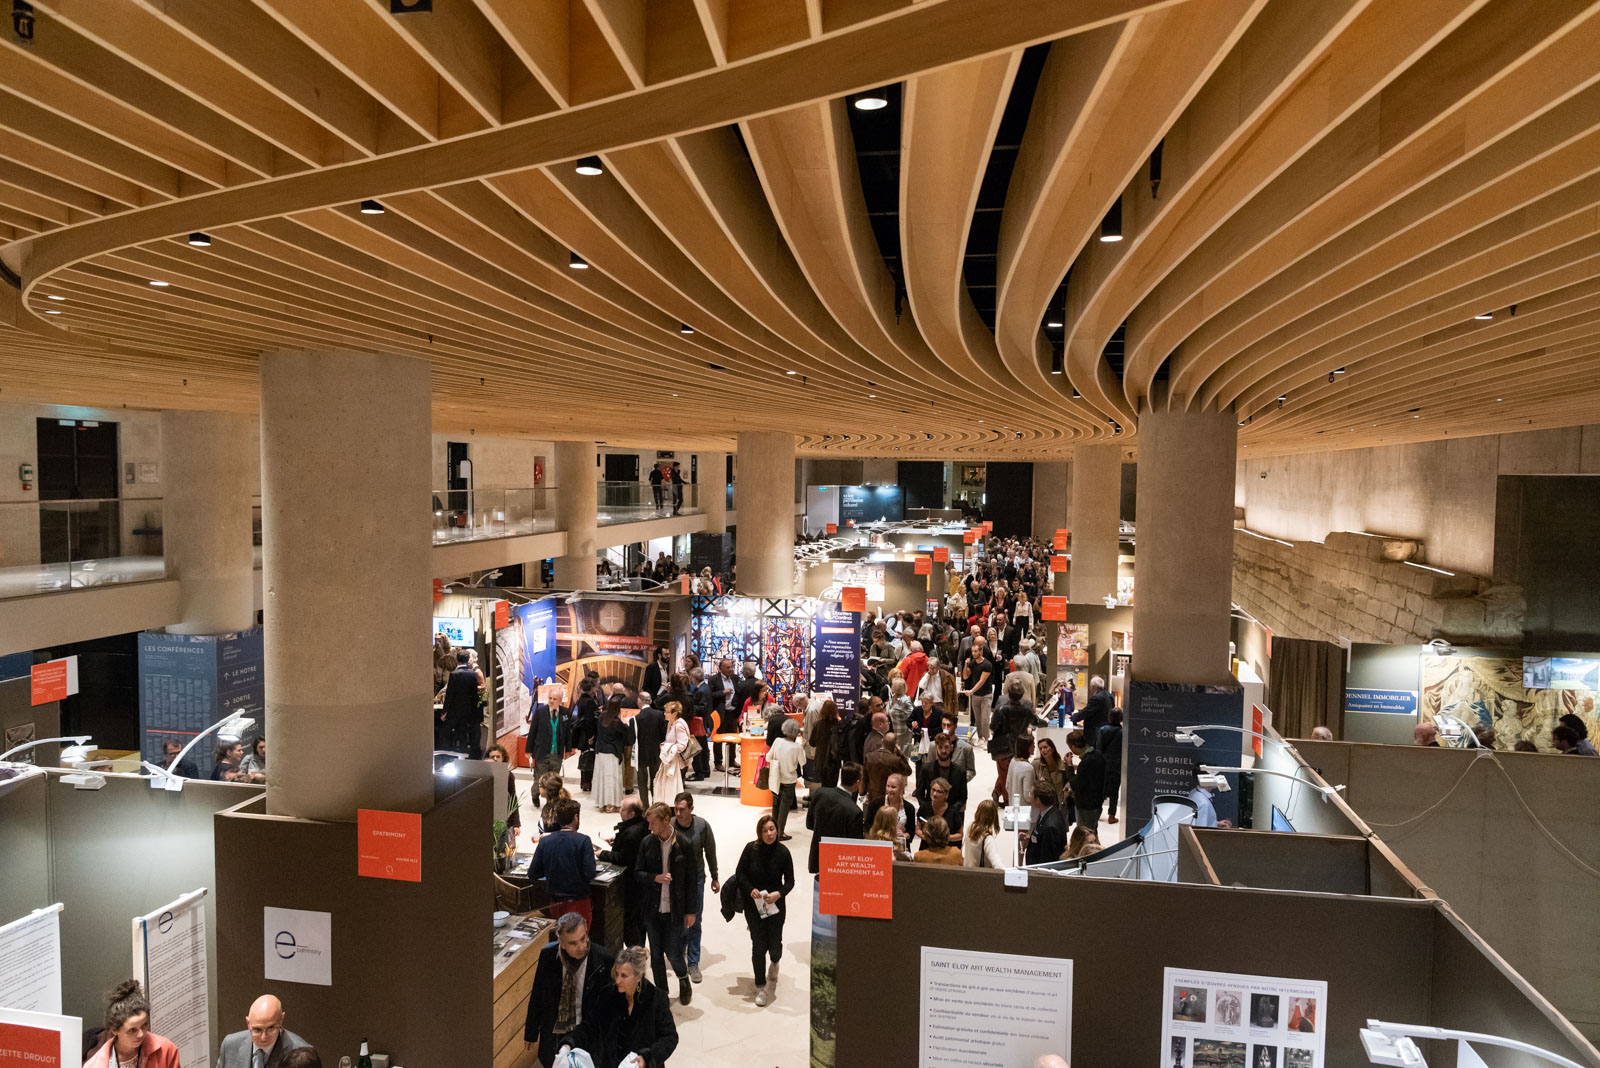 LE SALON INTERNATIONAL DU PATRIMOINE CULTUREL - DU 28 AU 31 OCTOBRE 2020